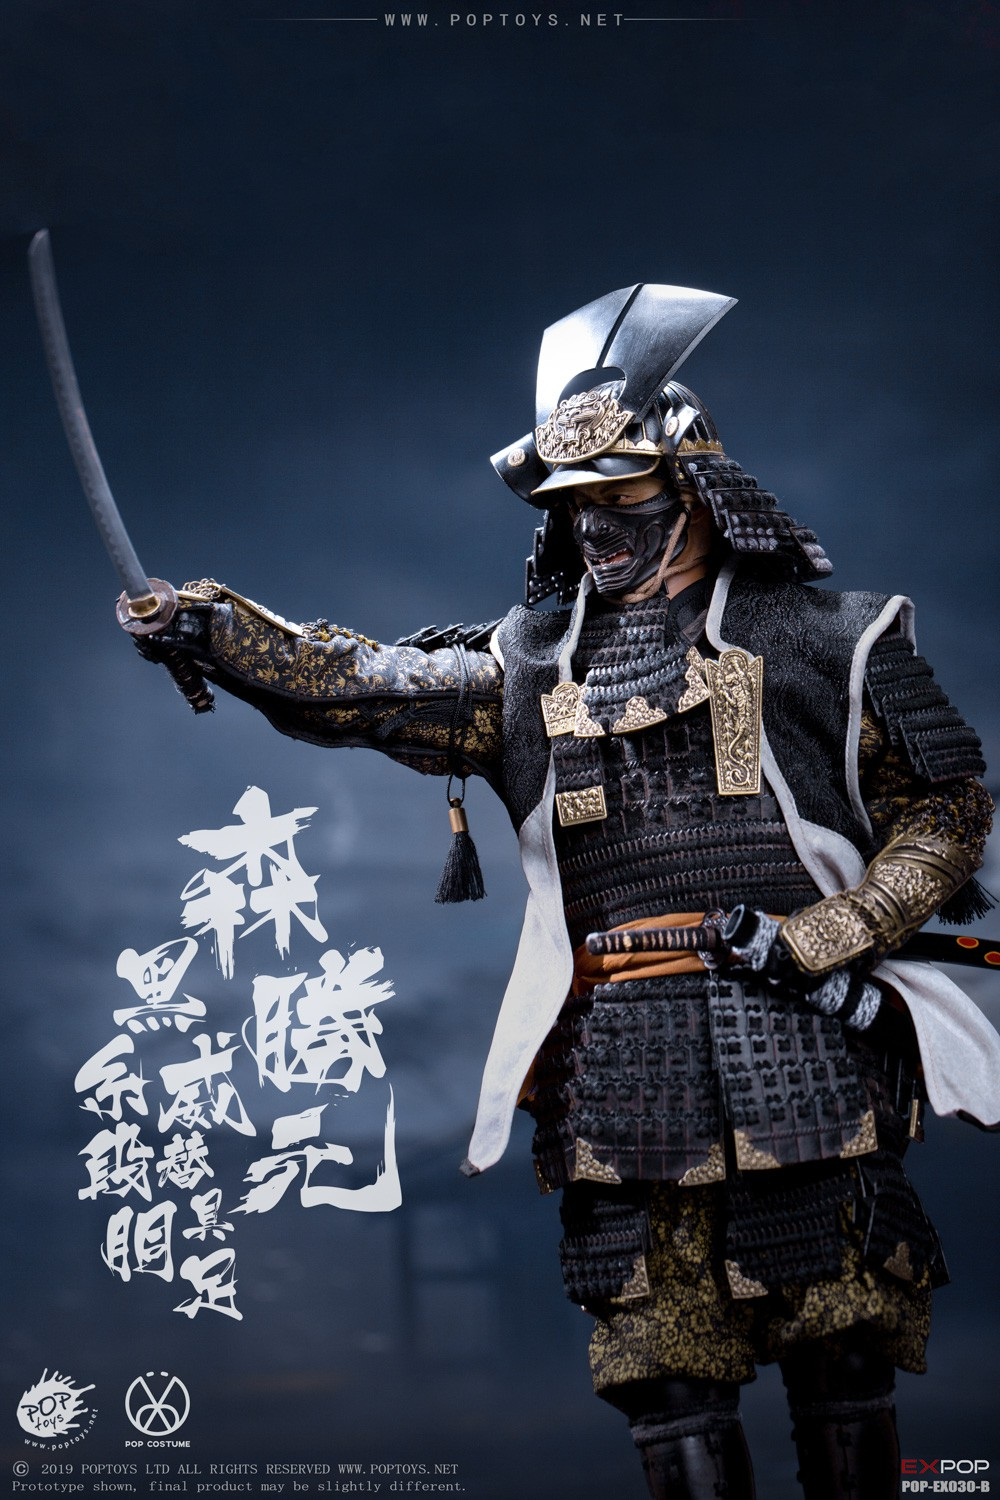 japanese - NEW PRODUCT: PopToys: 1/6 Benevolent Samurai EX30 Standard Edition/Deluxe Edition/Petition Edition [A piece of material 100% alloy] 16325111